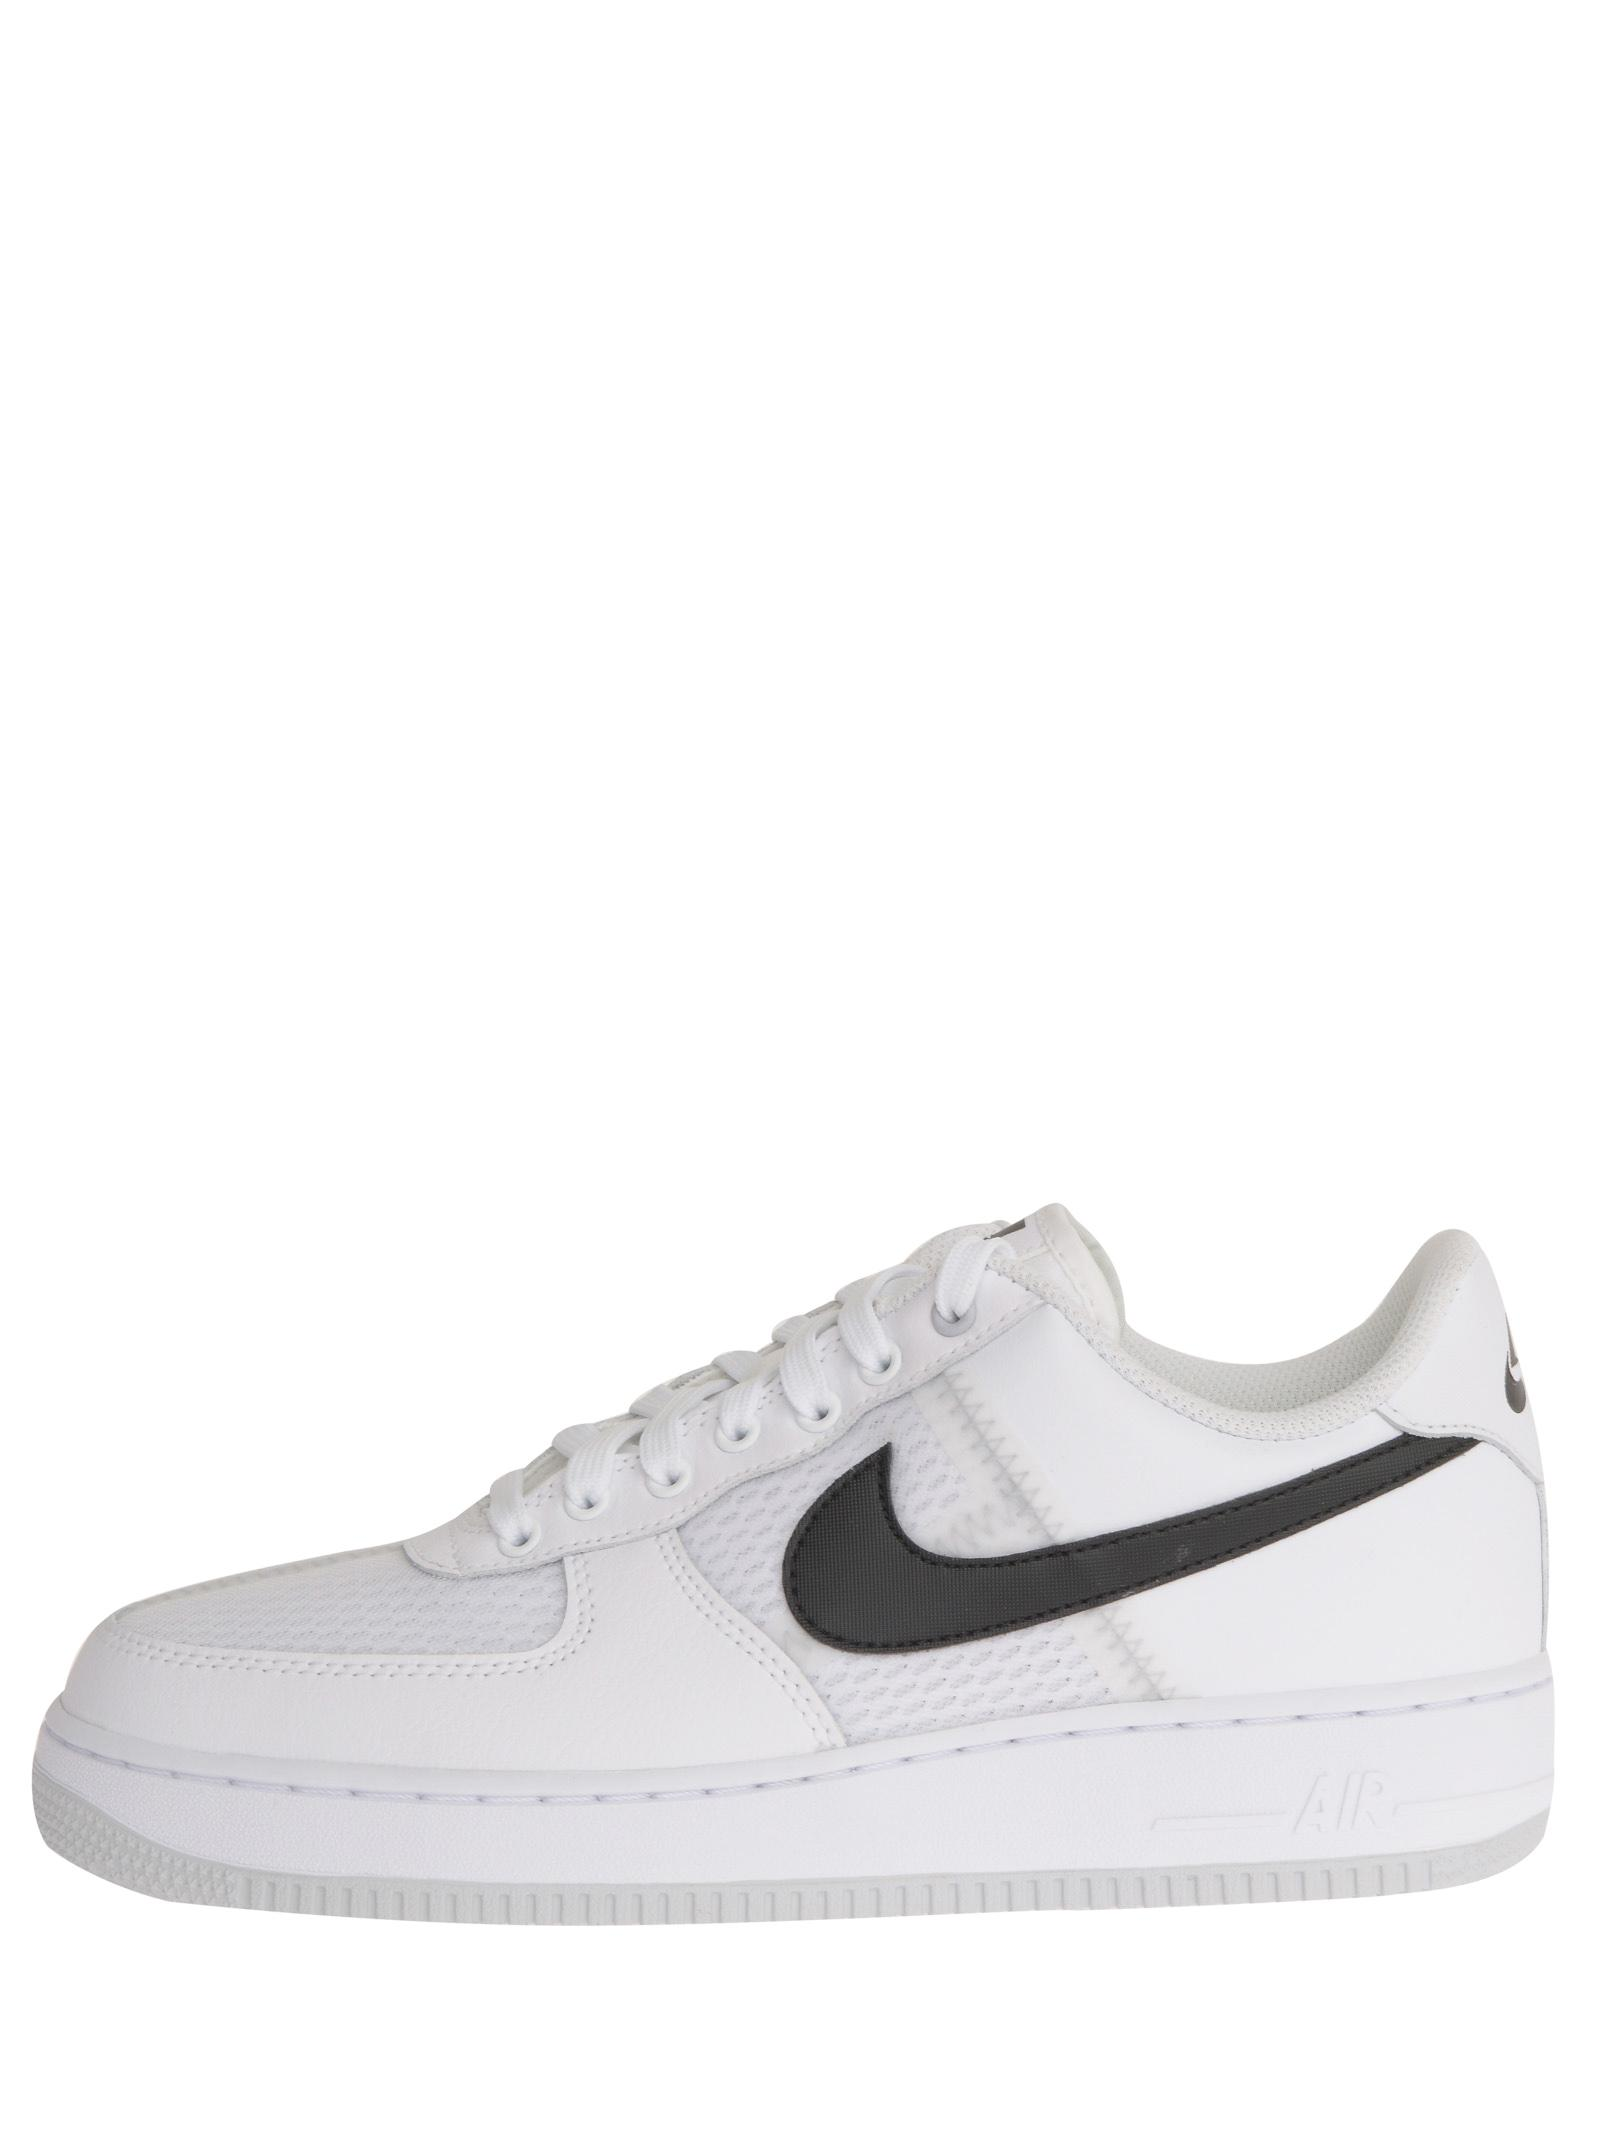 Nike Air Force 1 '07 Lv8 White Mesh And Leather Sneakers With ...